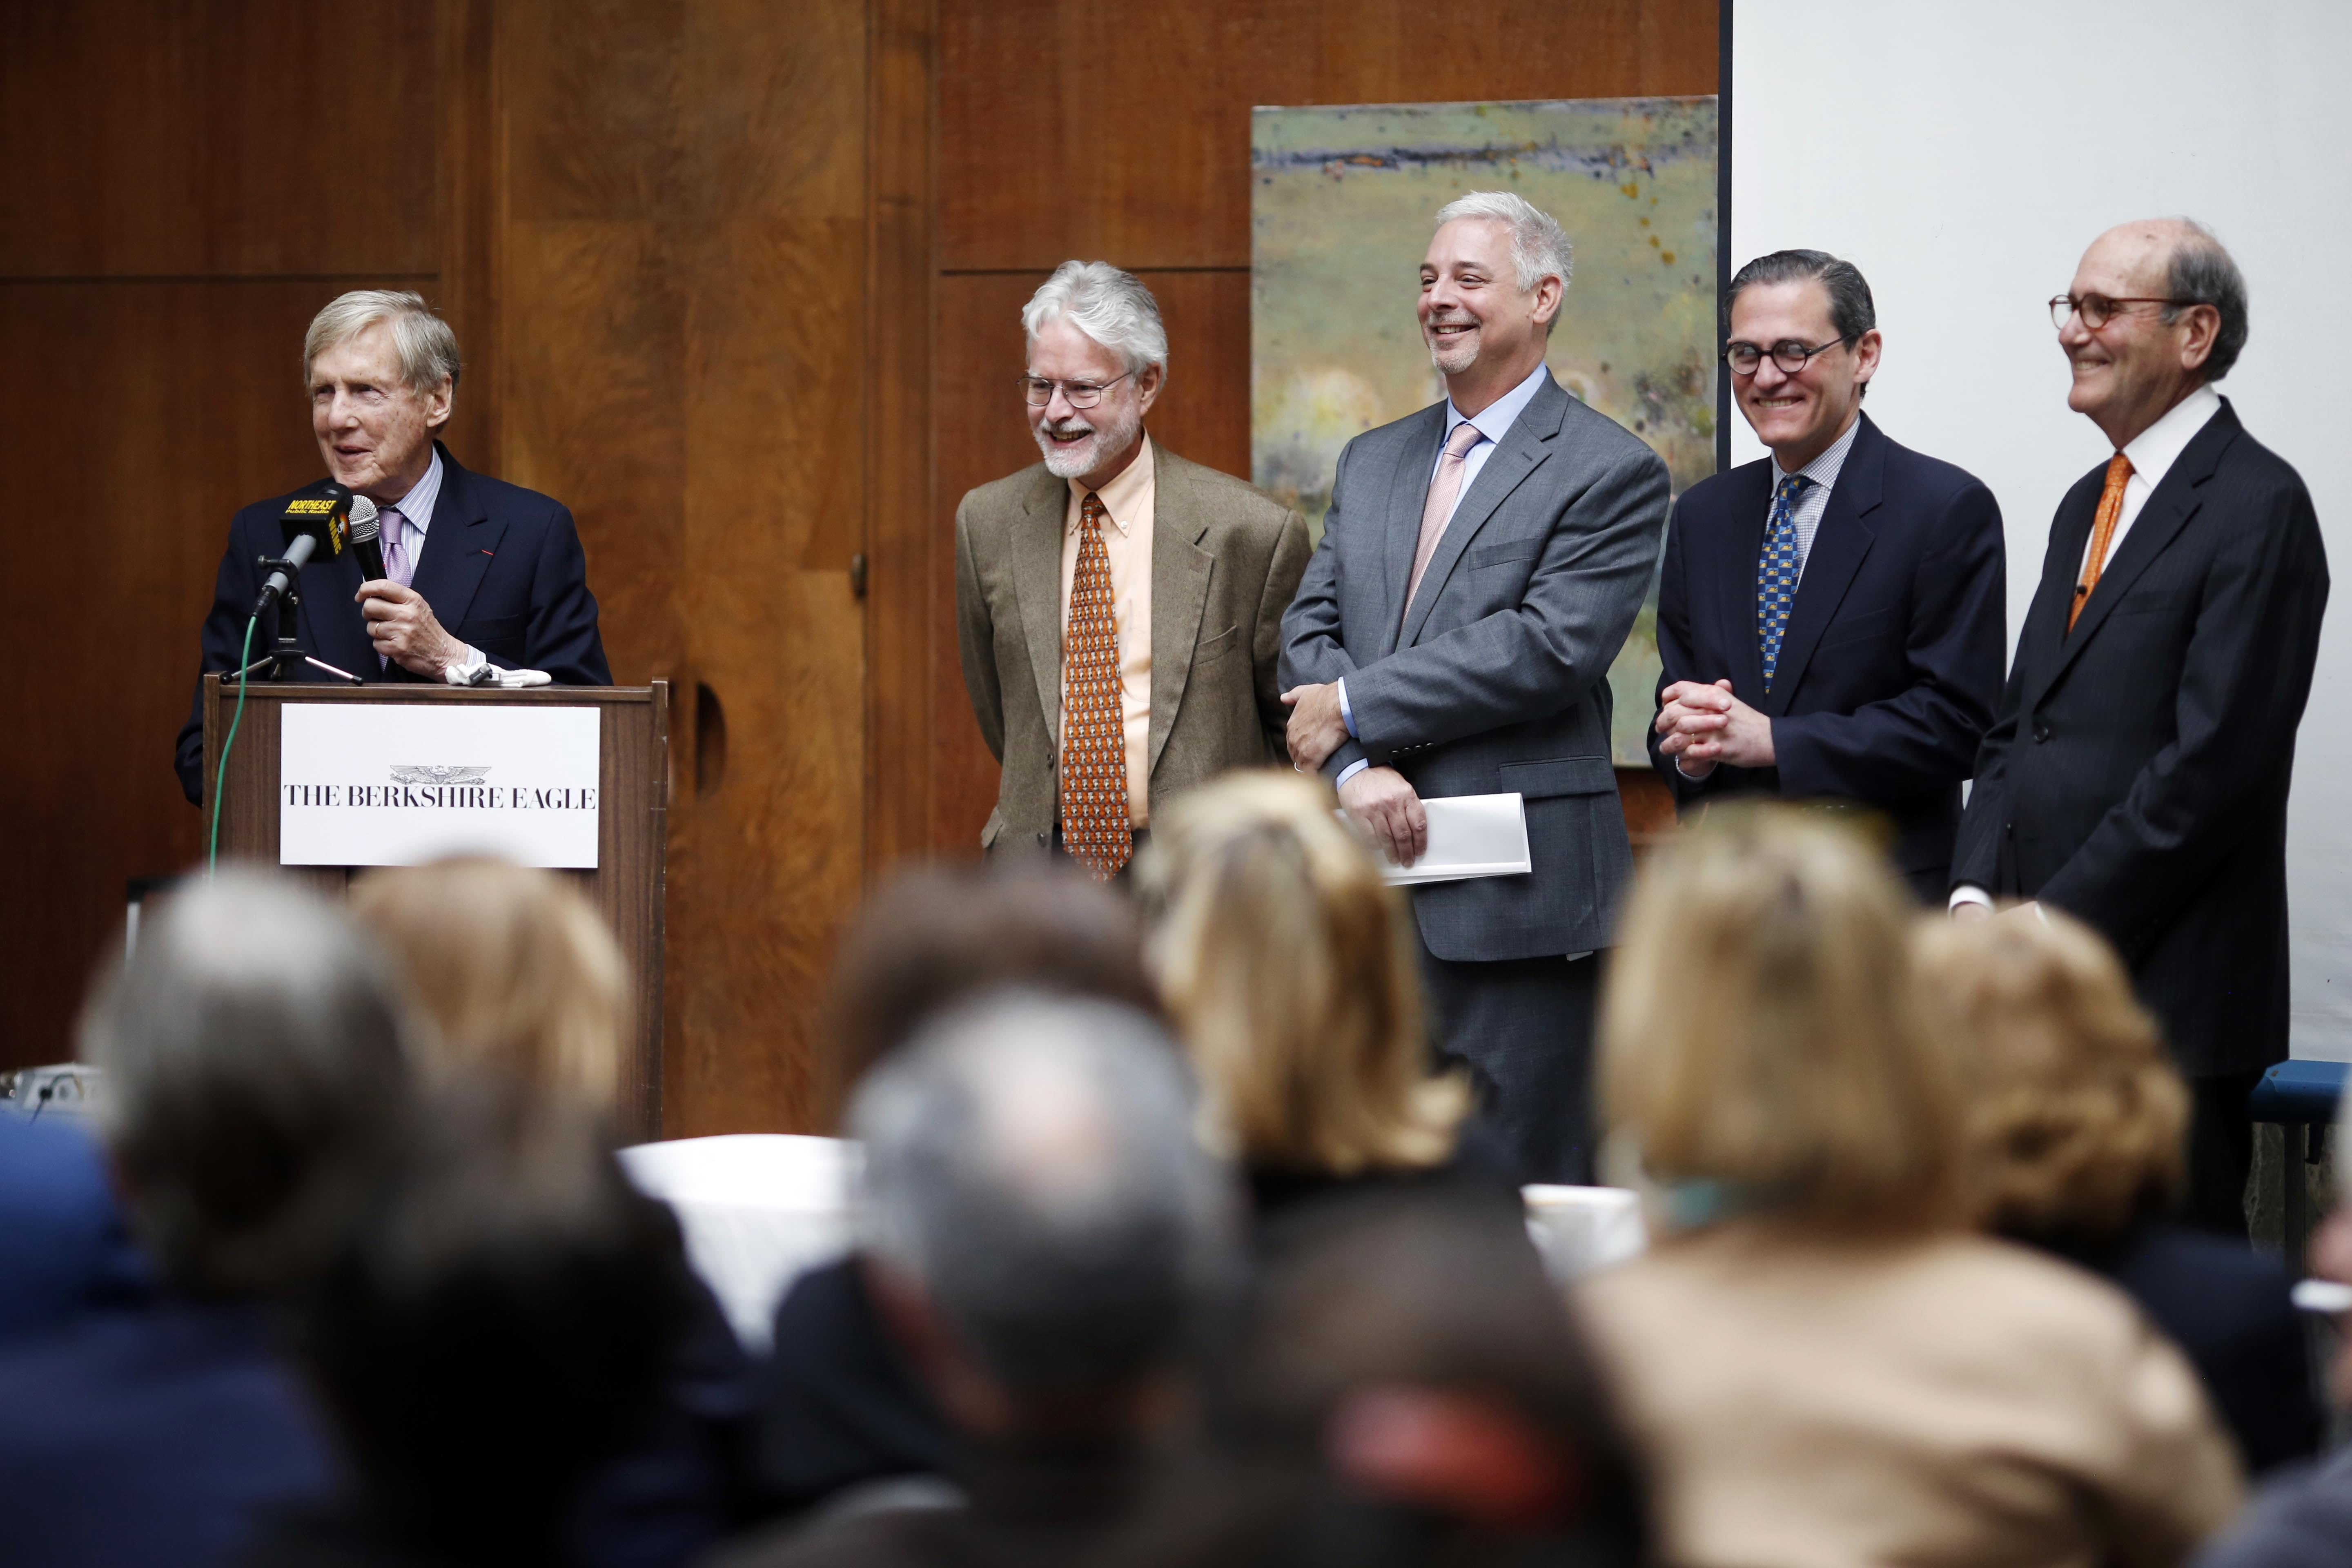 Robert Wilmers, chairman and CEO of M&T Bank Corp., announces the purchase of four New England papers at the Berkshire Museum on Thursday.